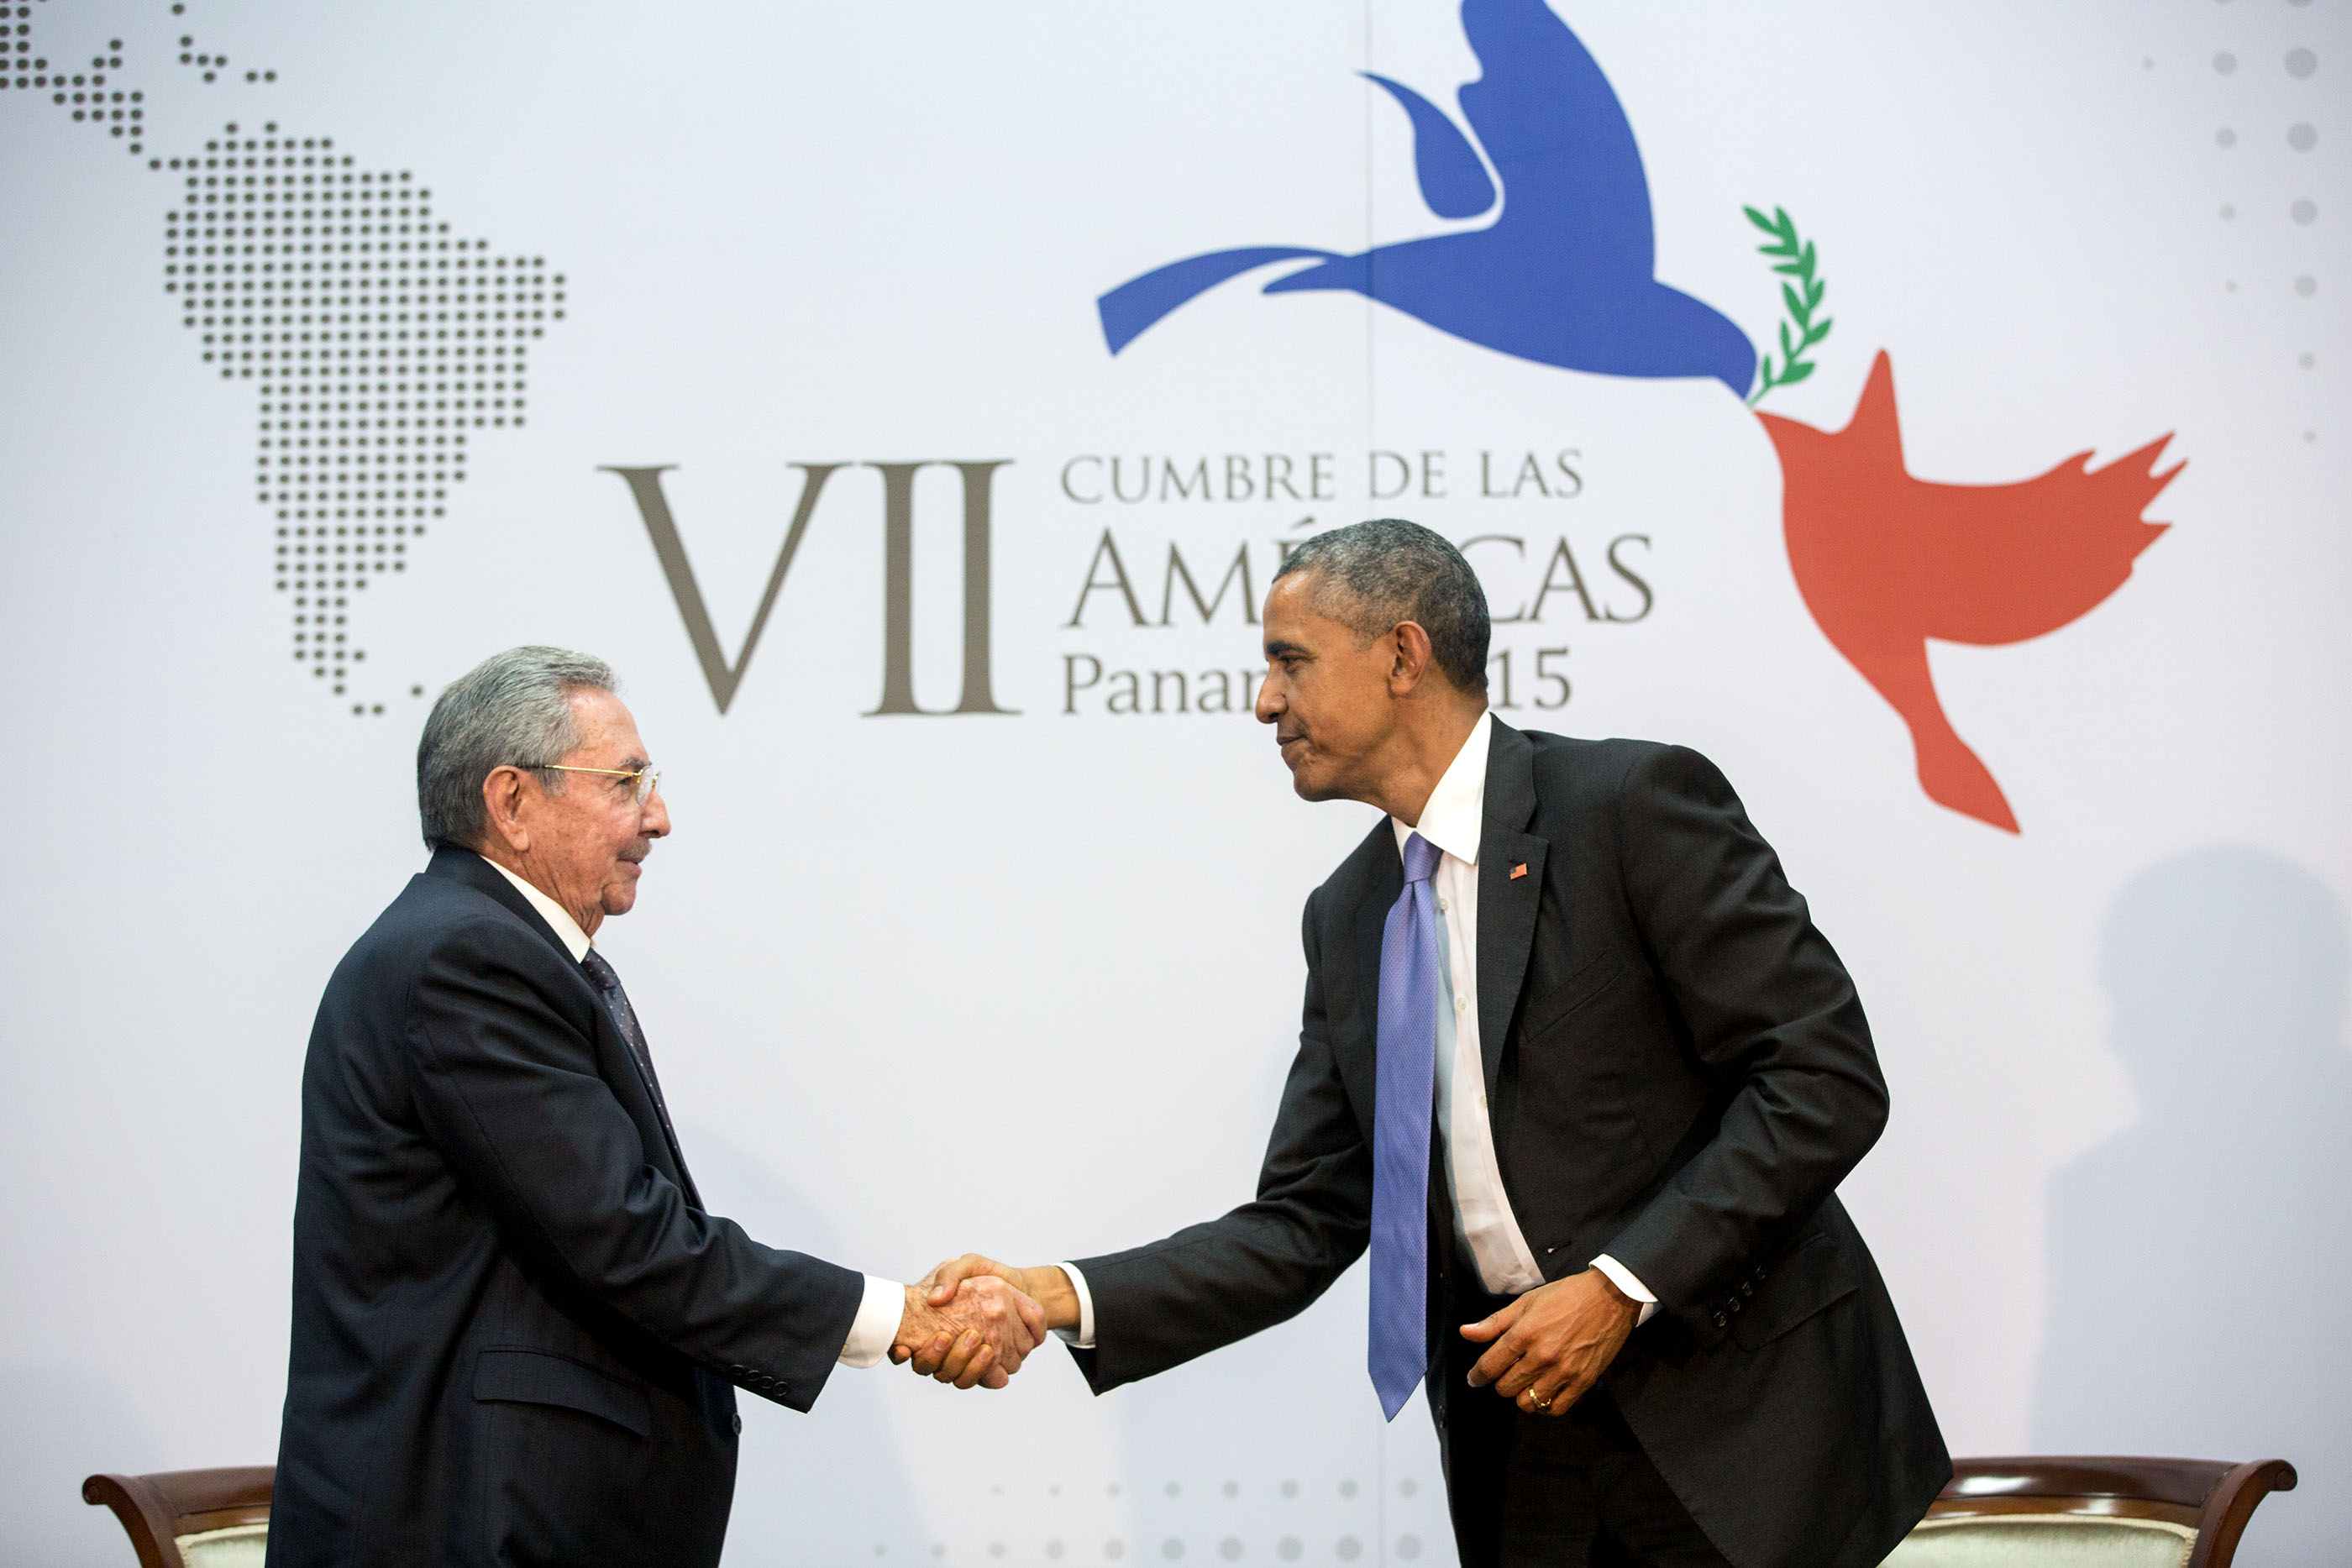 President Obama greets President Raul Castro of Cuba before their bilateral meeting. (Official White House Photo by Amanda Lucidon)